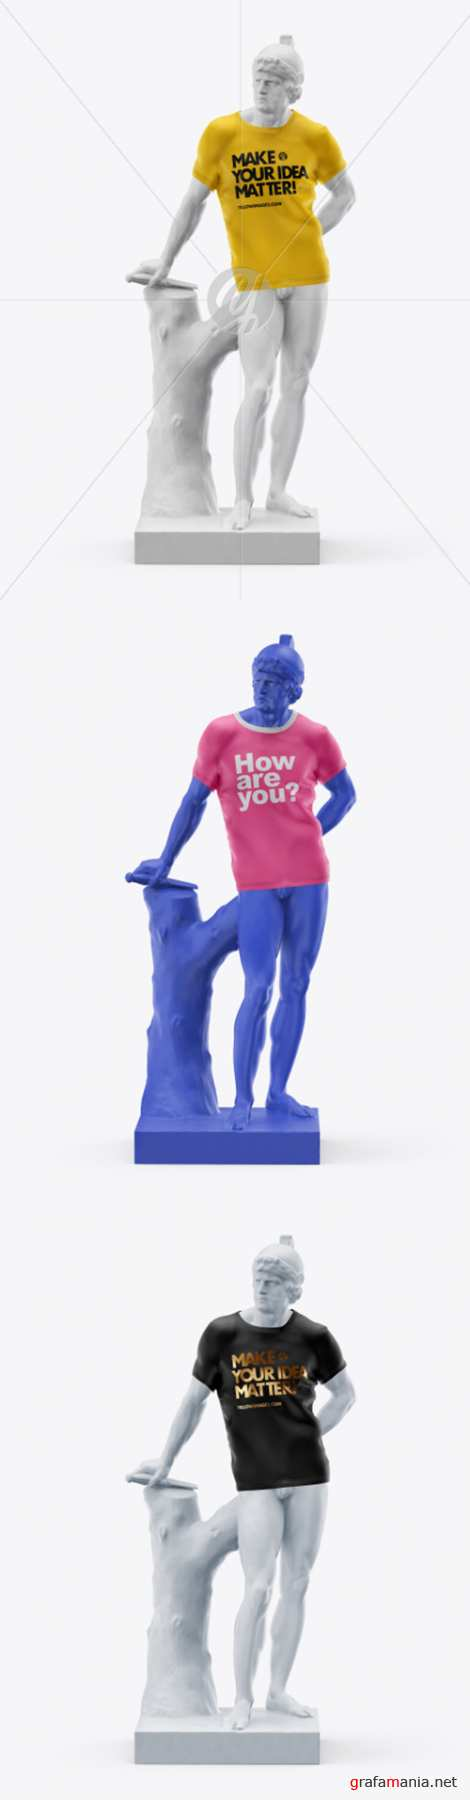 Mans Statue Wearing a T-Shirt Mockup 37034 TIF